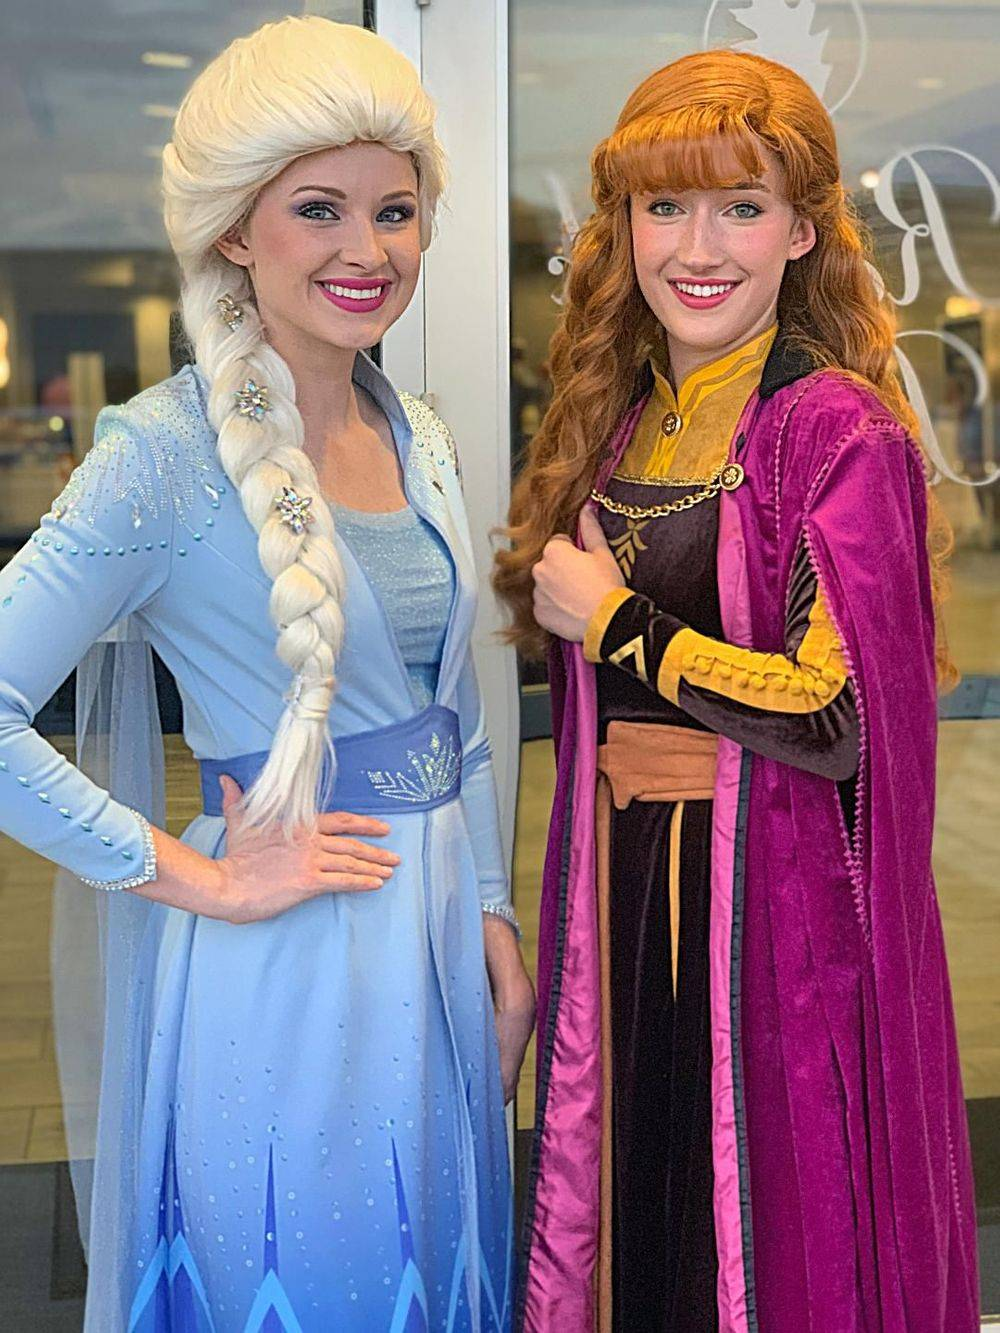 Frozen 2 party characters impersonators San Antonio